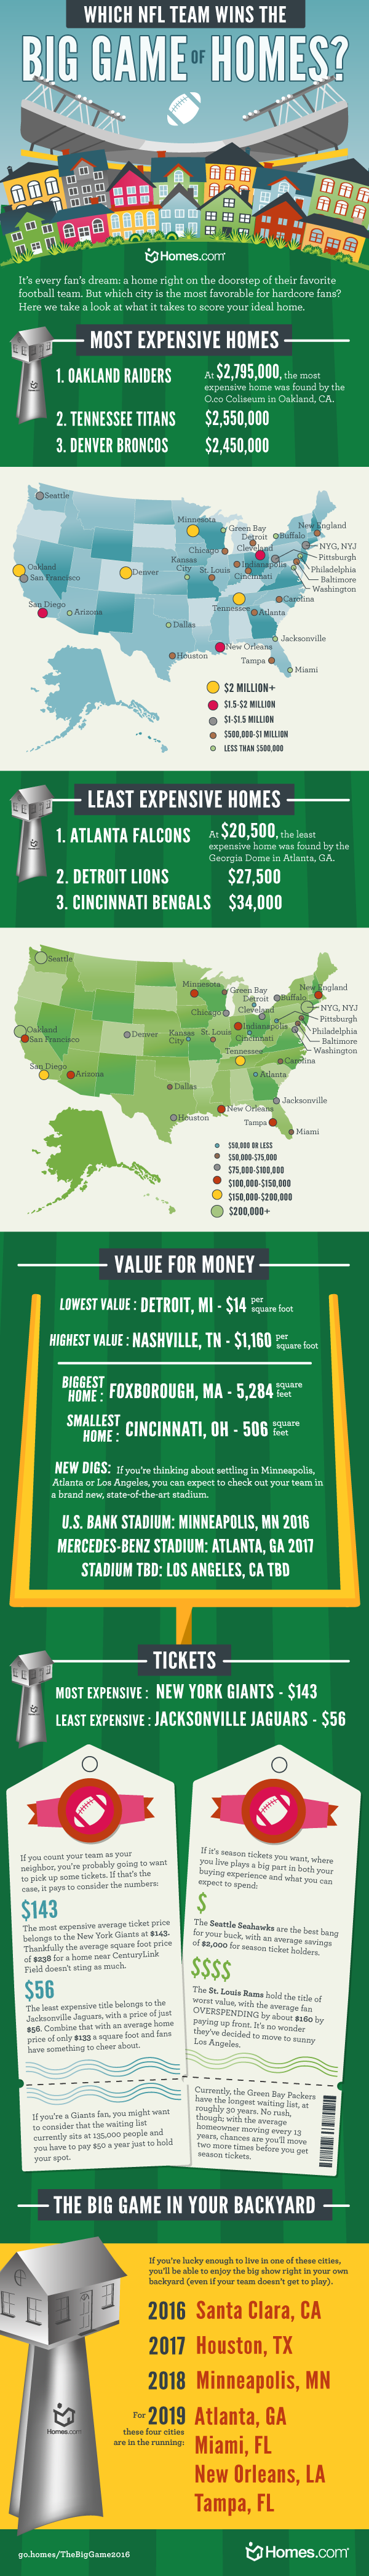 NFL Stadiums and the Cost of Homes